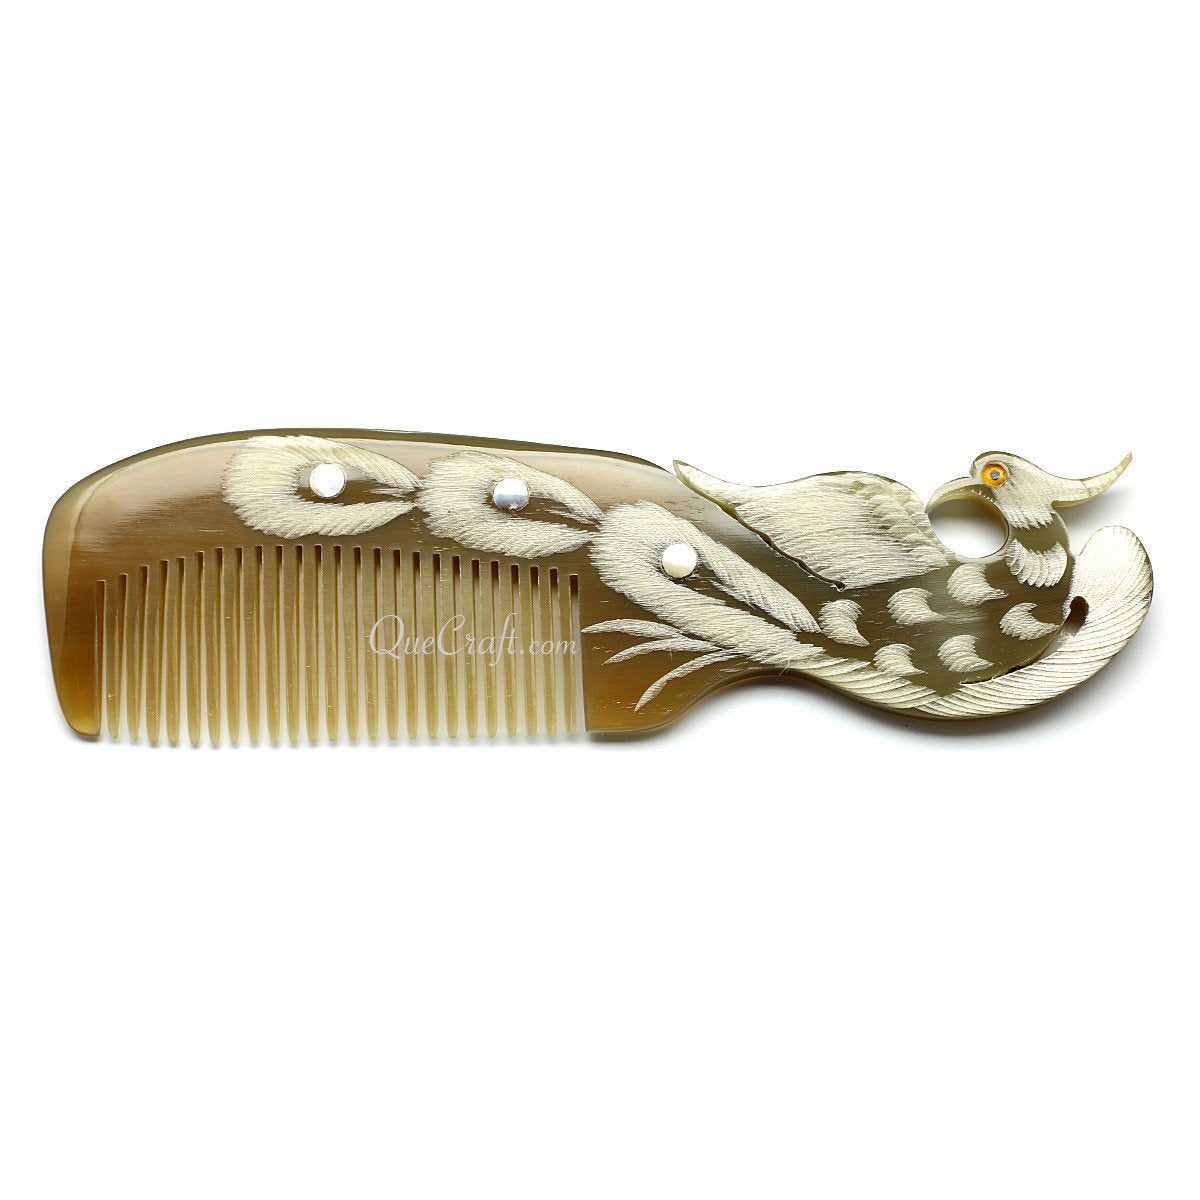 Horn & Shell Hair Comb #10680 - HORN.JEWELRY by QueCraft